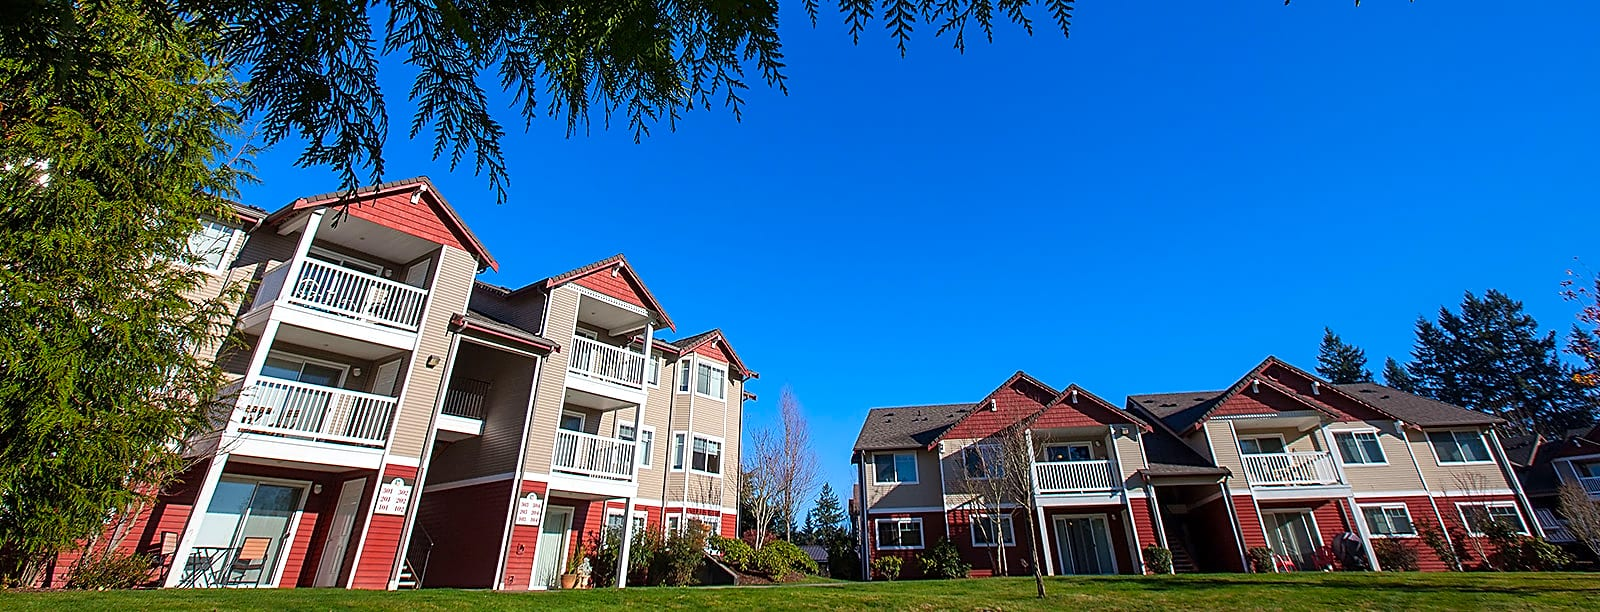 Apartments Near WCTC Woodbury Apartments for Washington Community and Technical Colleges Students in Olympia, WA